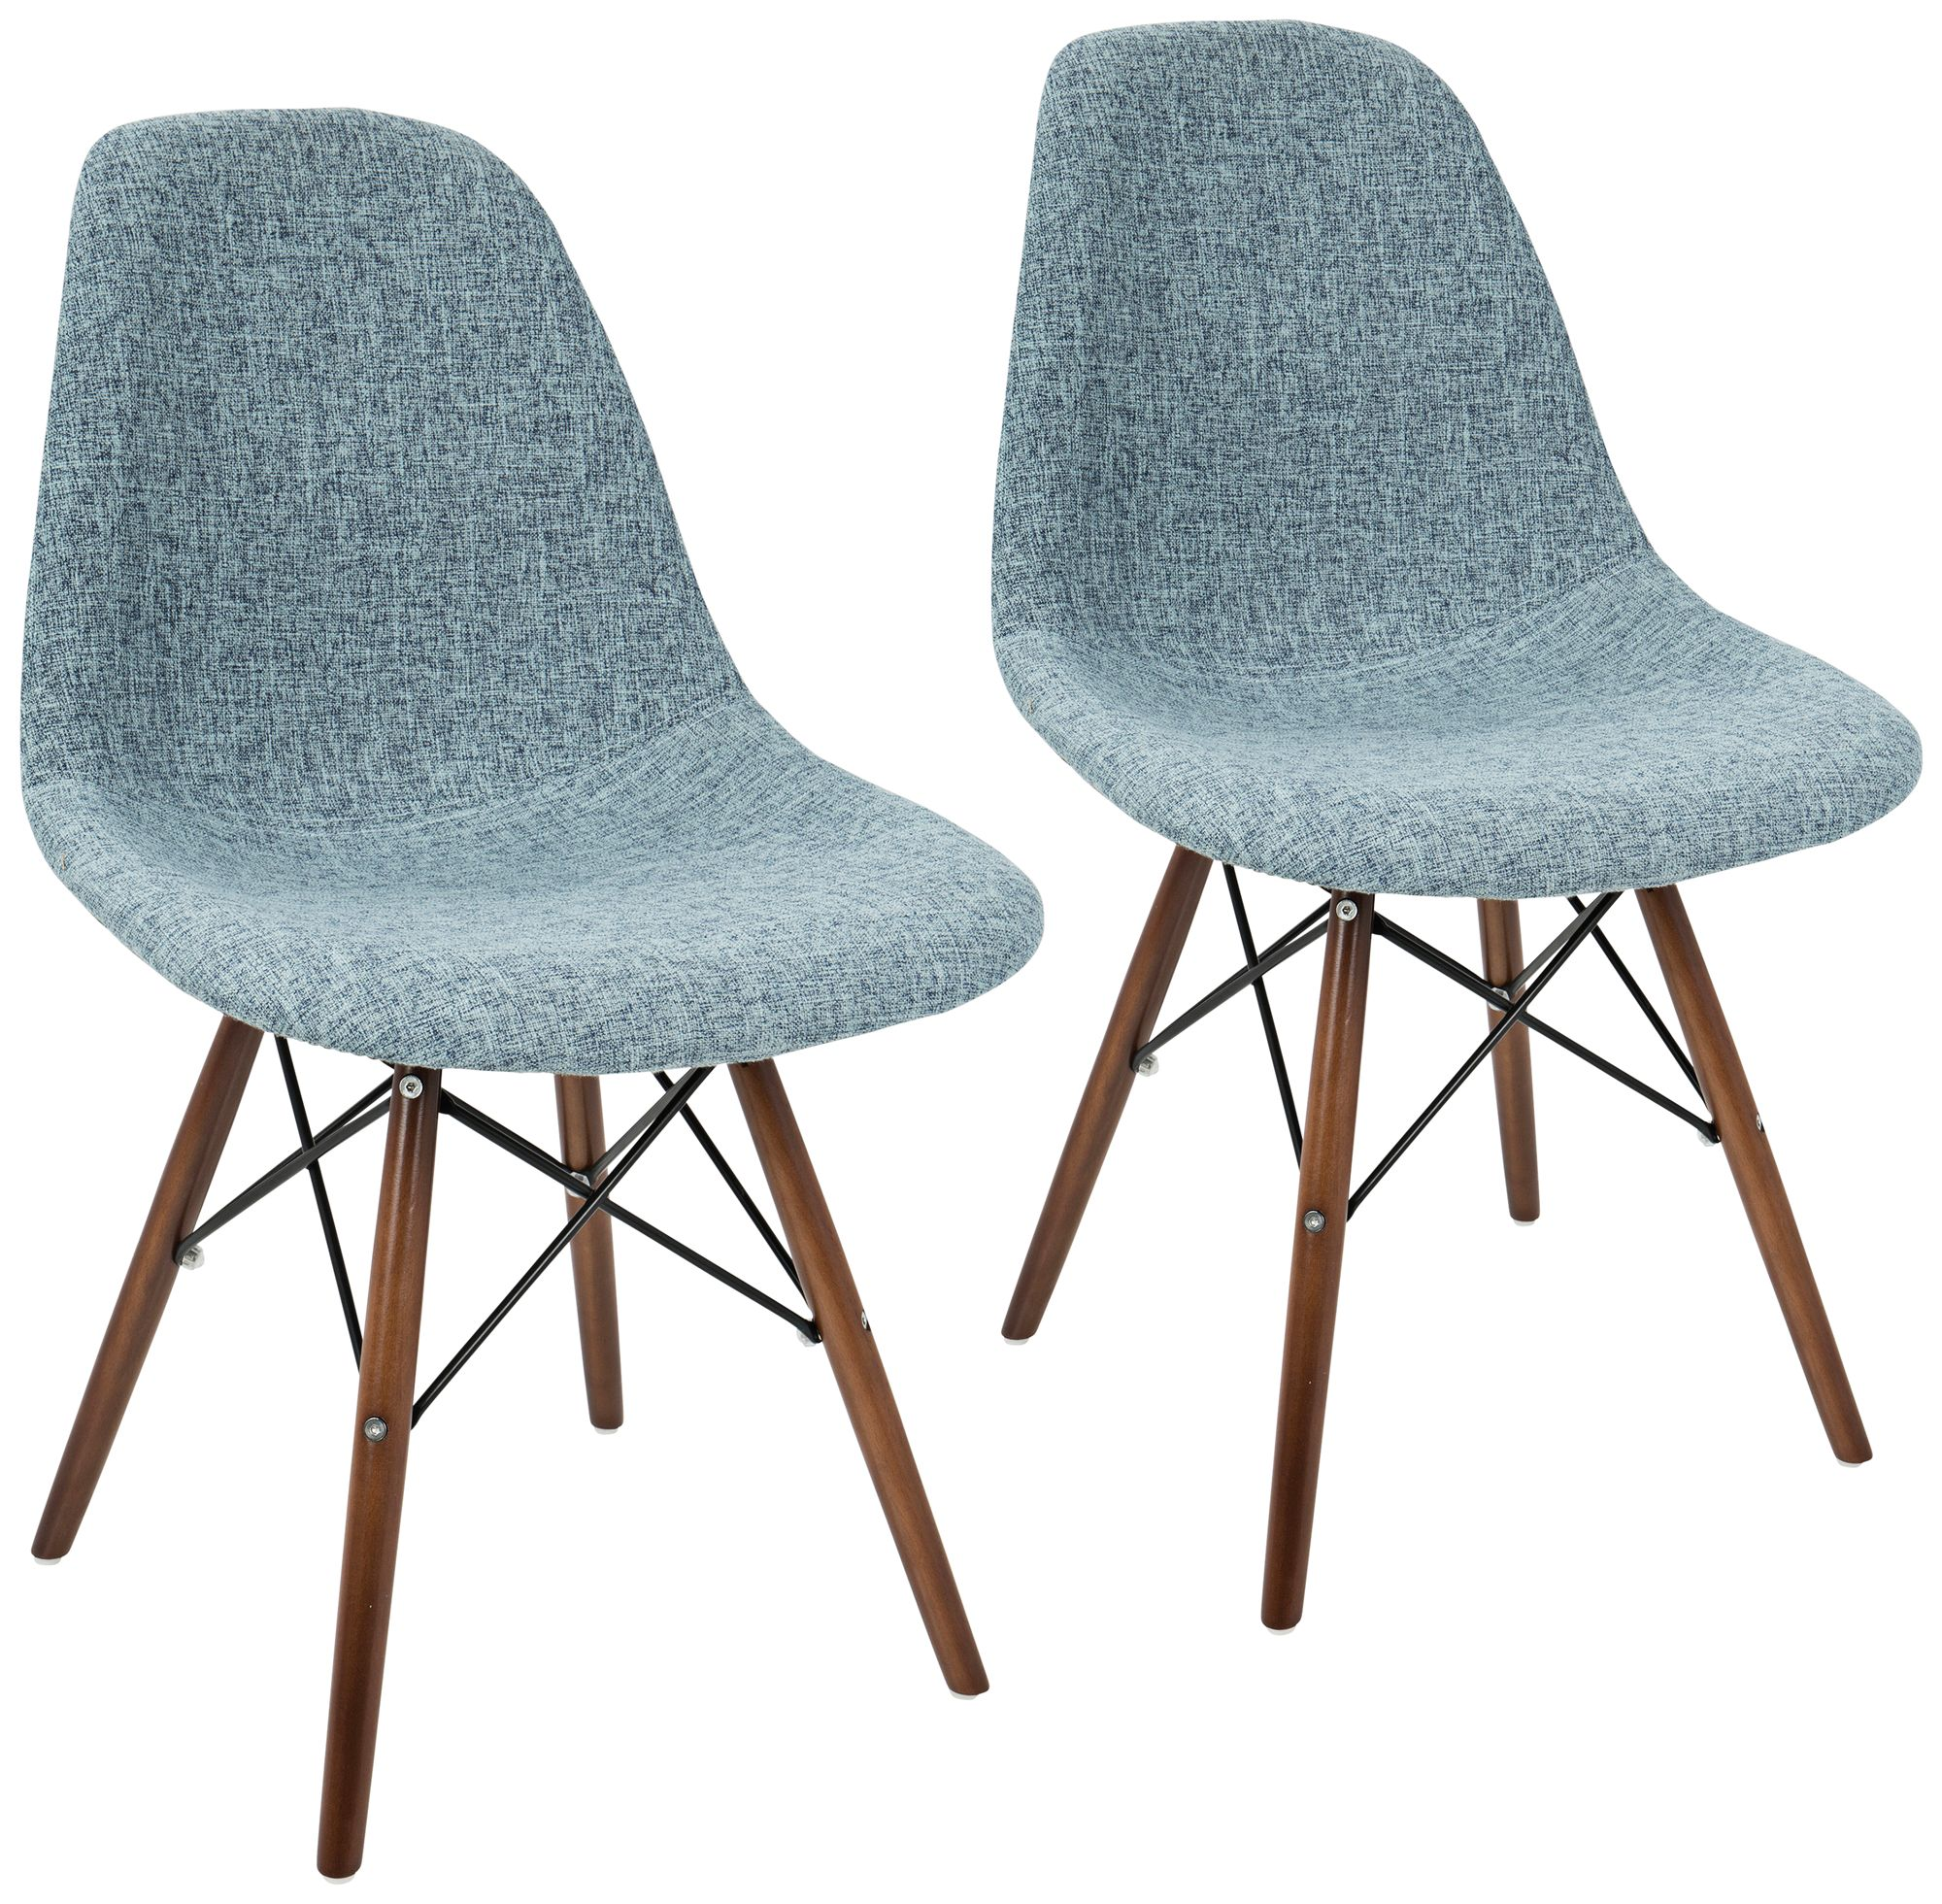 Light Blue Dining Chairs Design Blue Dining Room Chairs